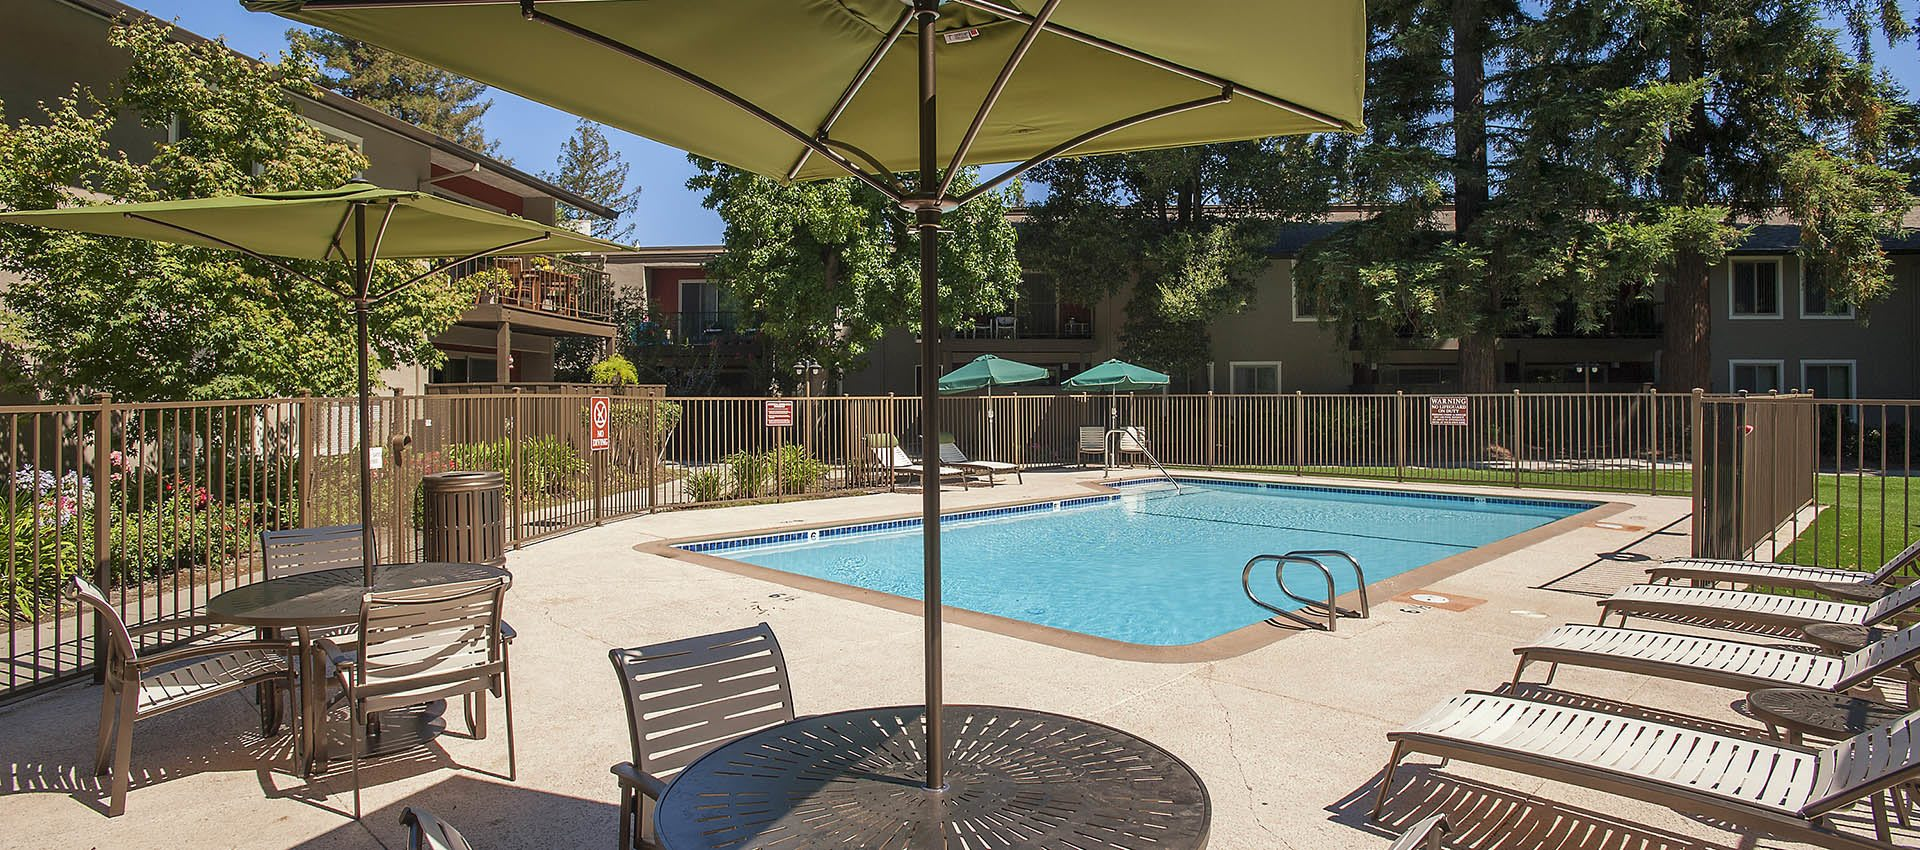 Covered Picnic Tables By The Pool at Flora Condominium Rentals in Walnut Creek, California